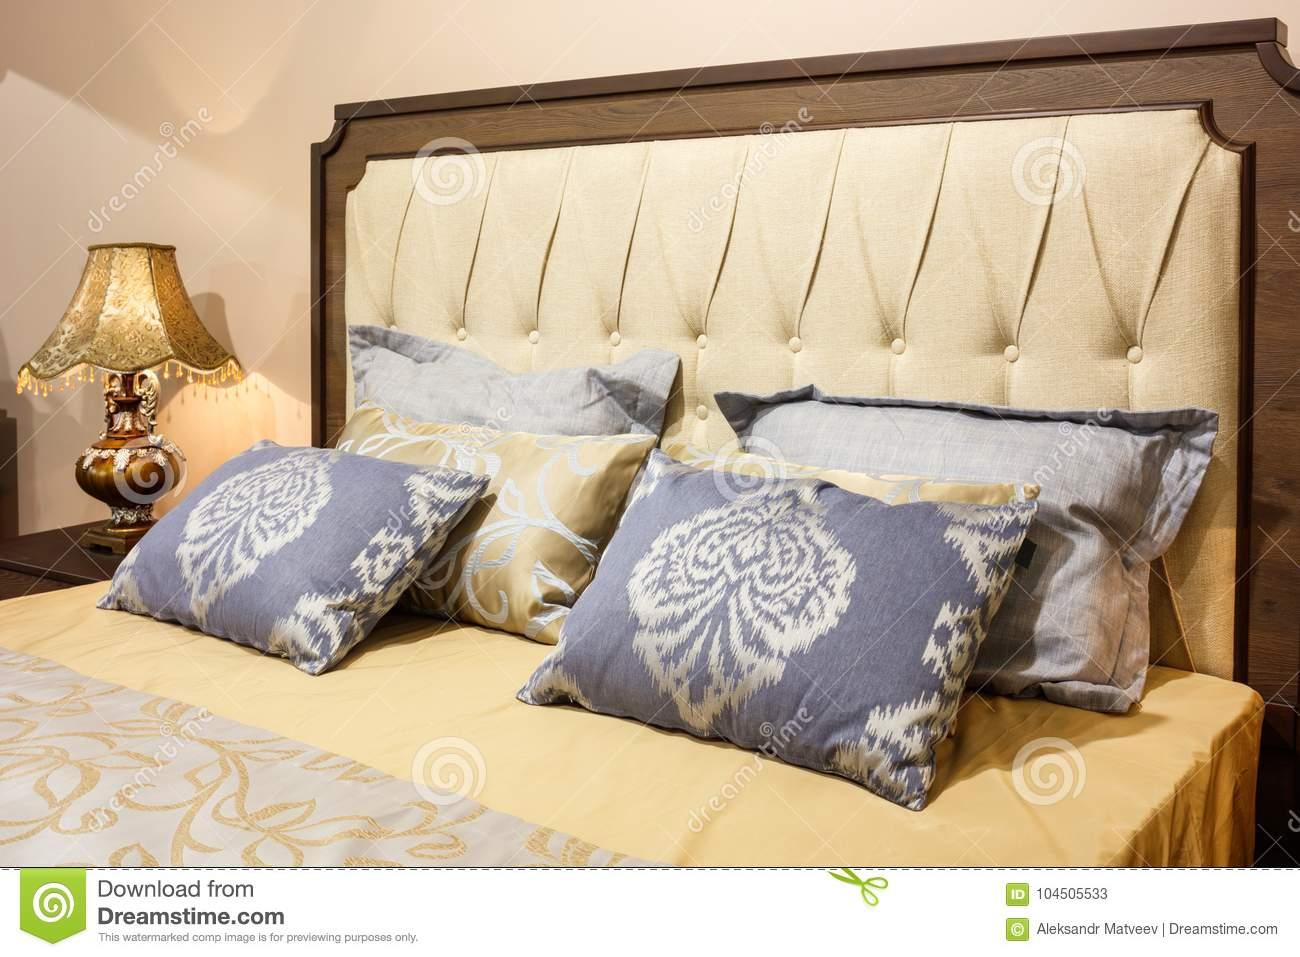 Luxury modern style bedroom in yellow and blue tones, Interior of a hotel bedroom, cushions with a pattern ornament